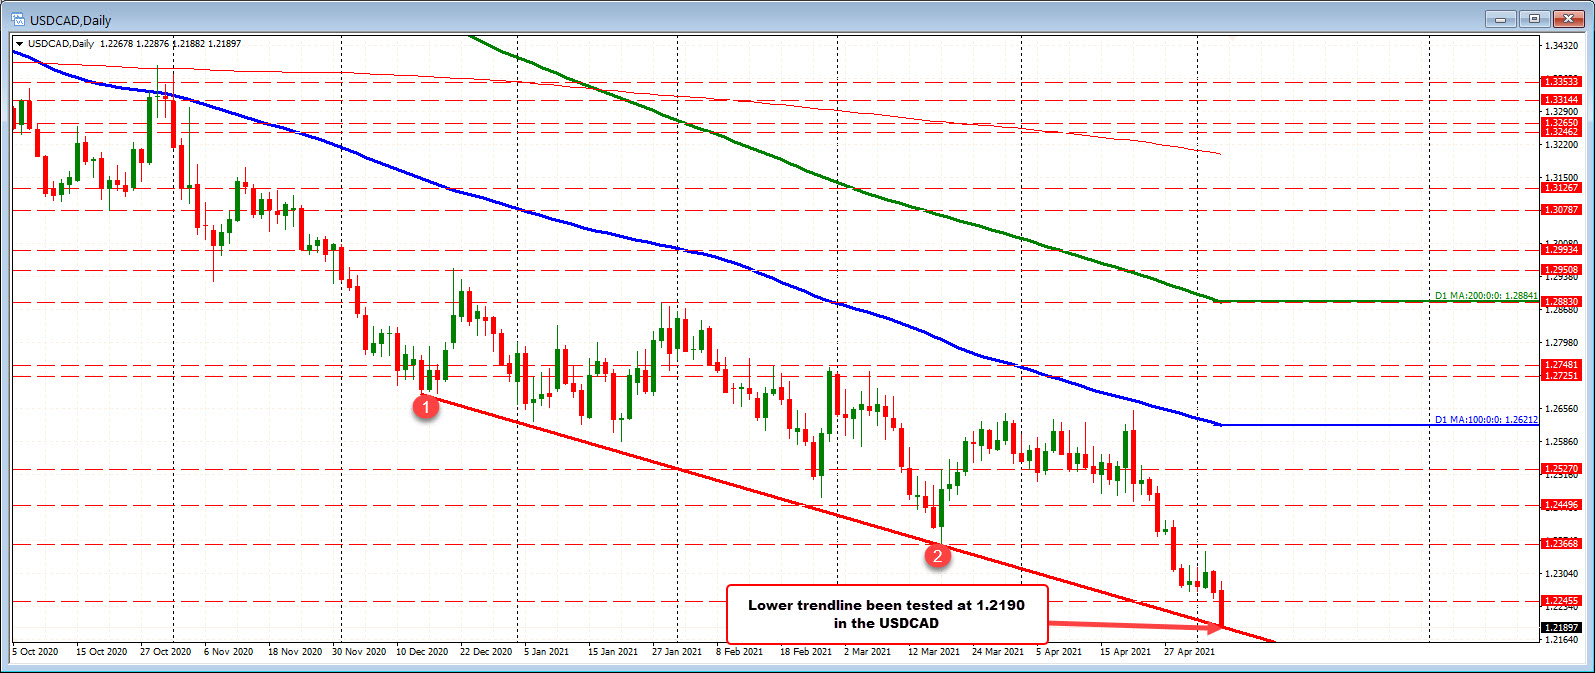 Key target for the USDCAD